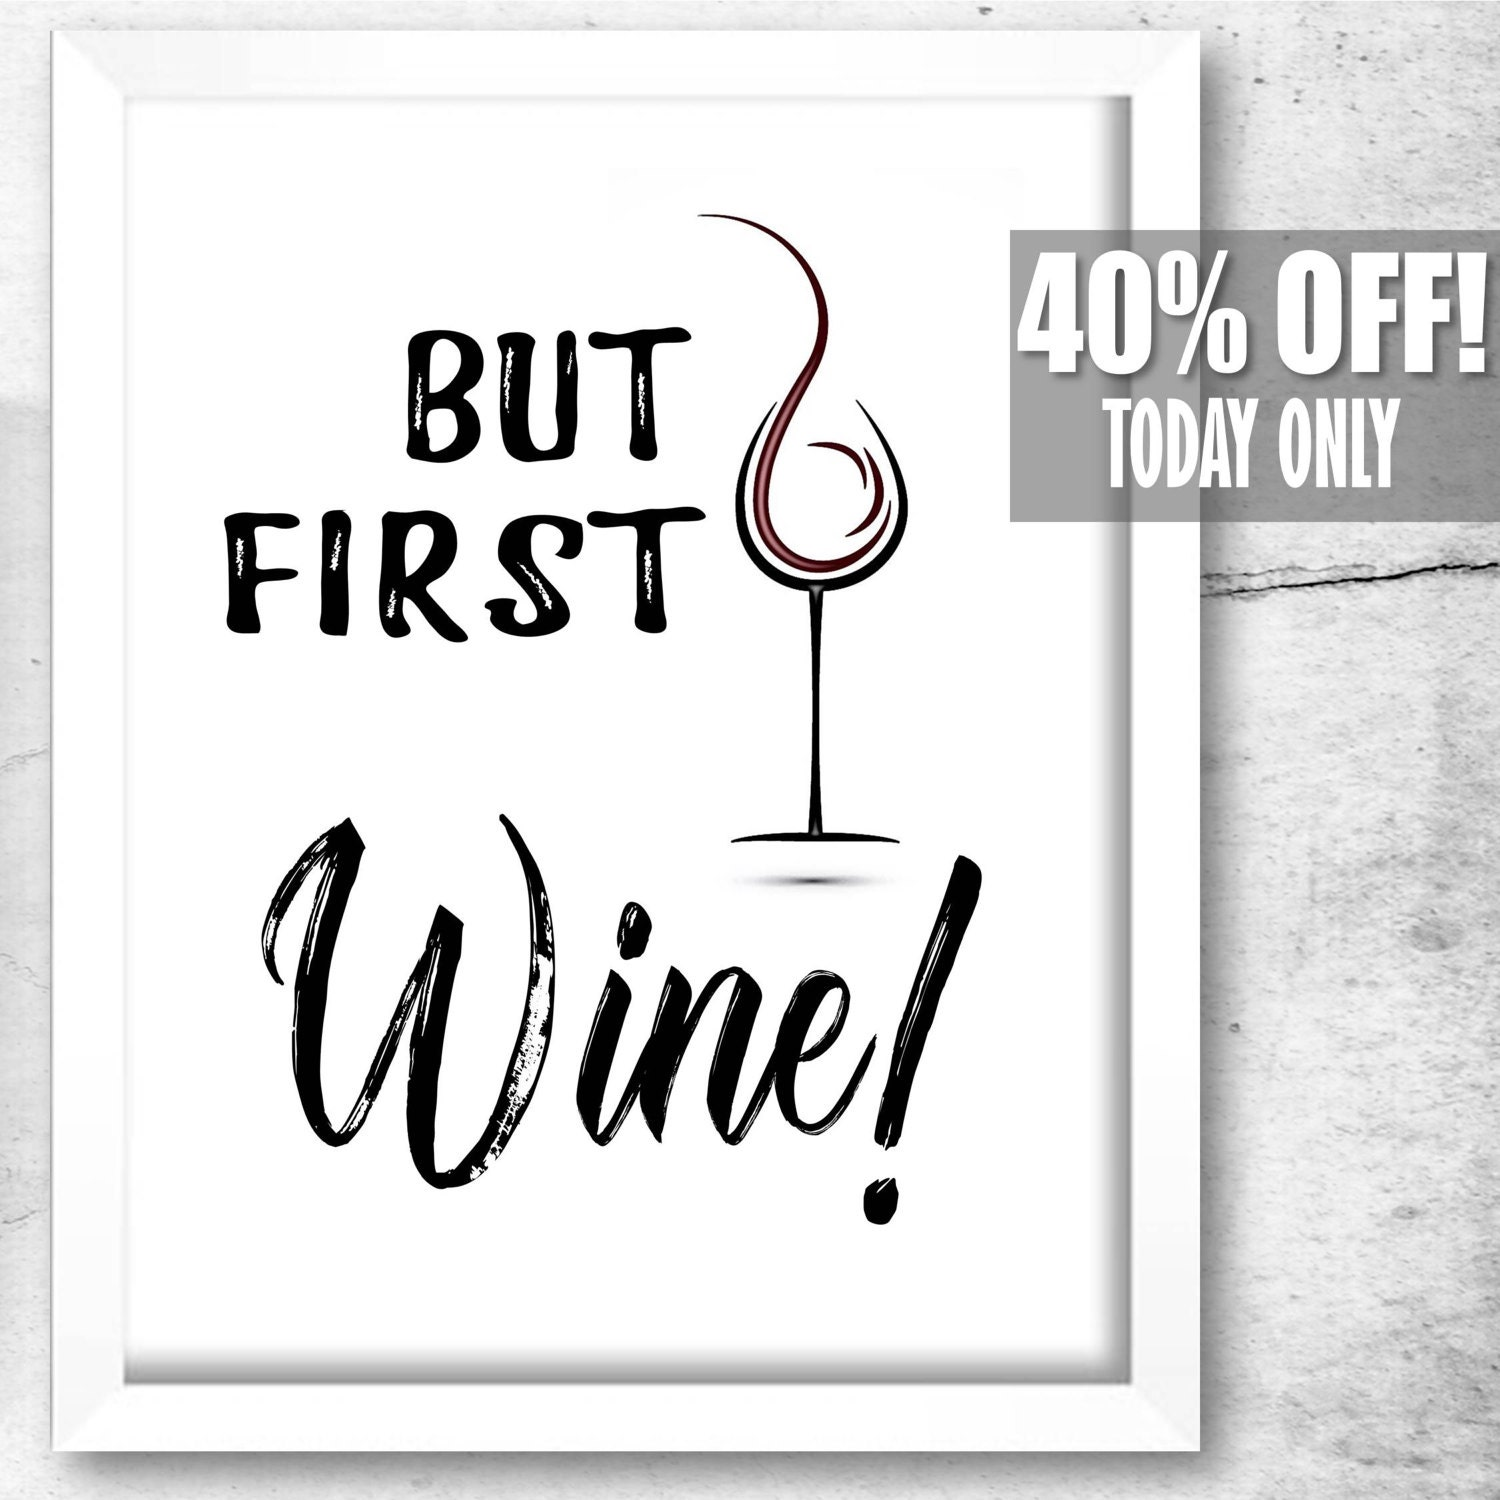 Kitchen Signs For Sale: But First Wine Funny Kitchen Signs Wine Gifts For Her Best